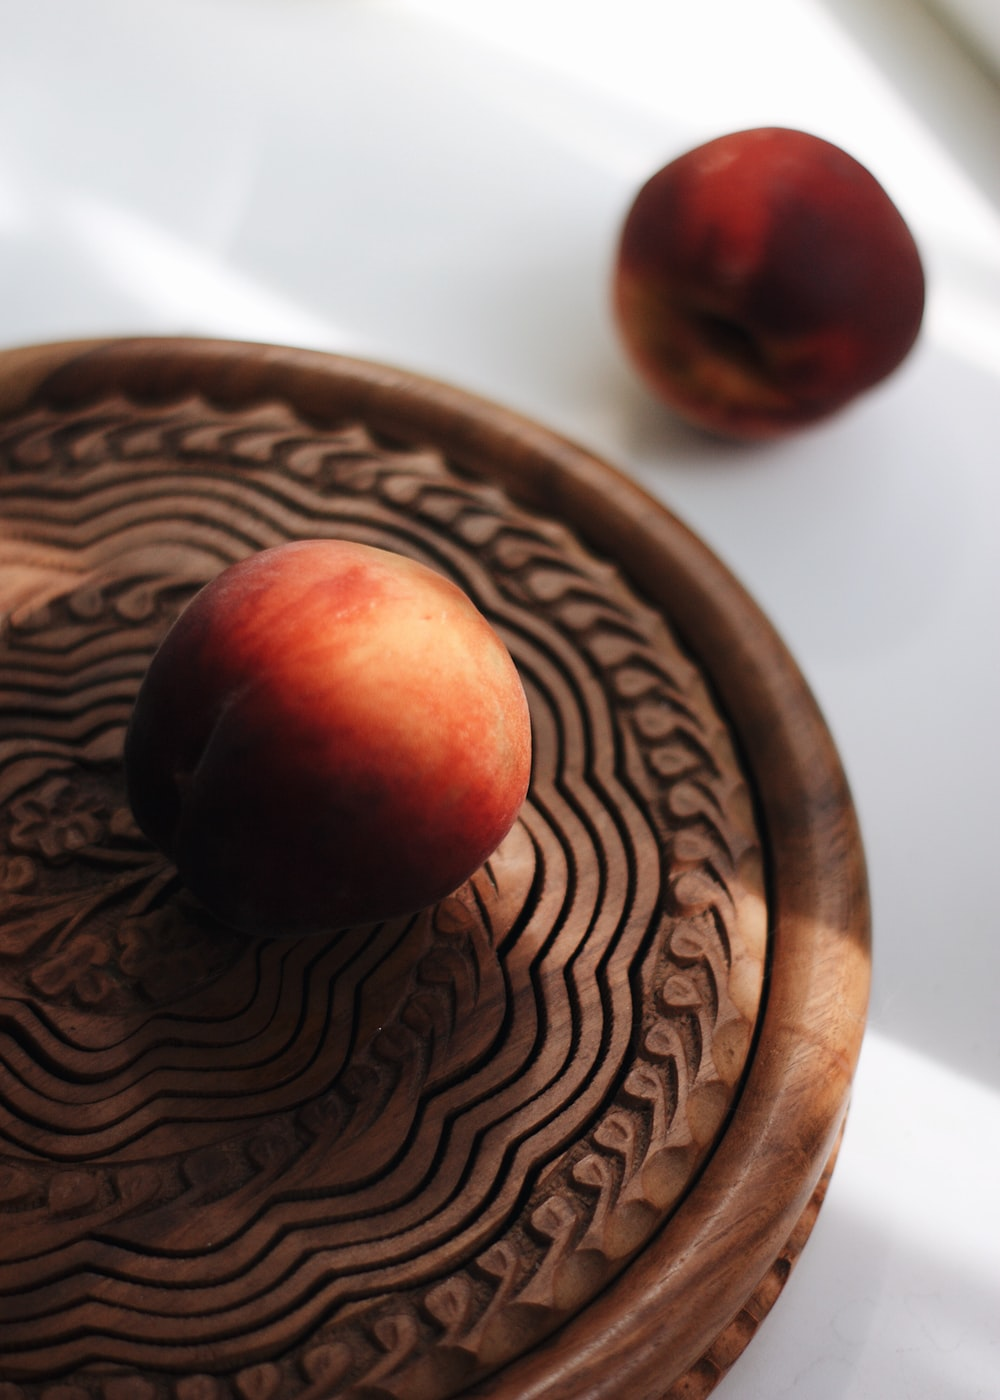 red apple fruit on brown wooden round table